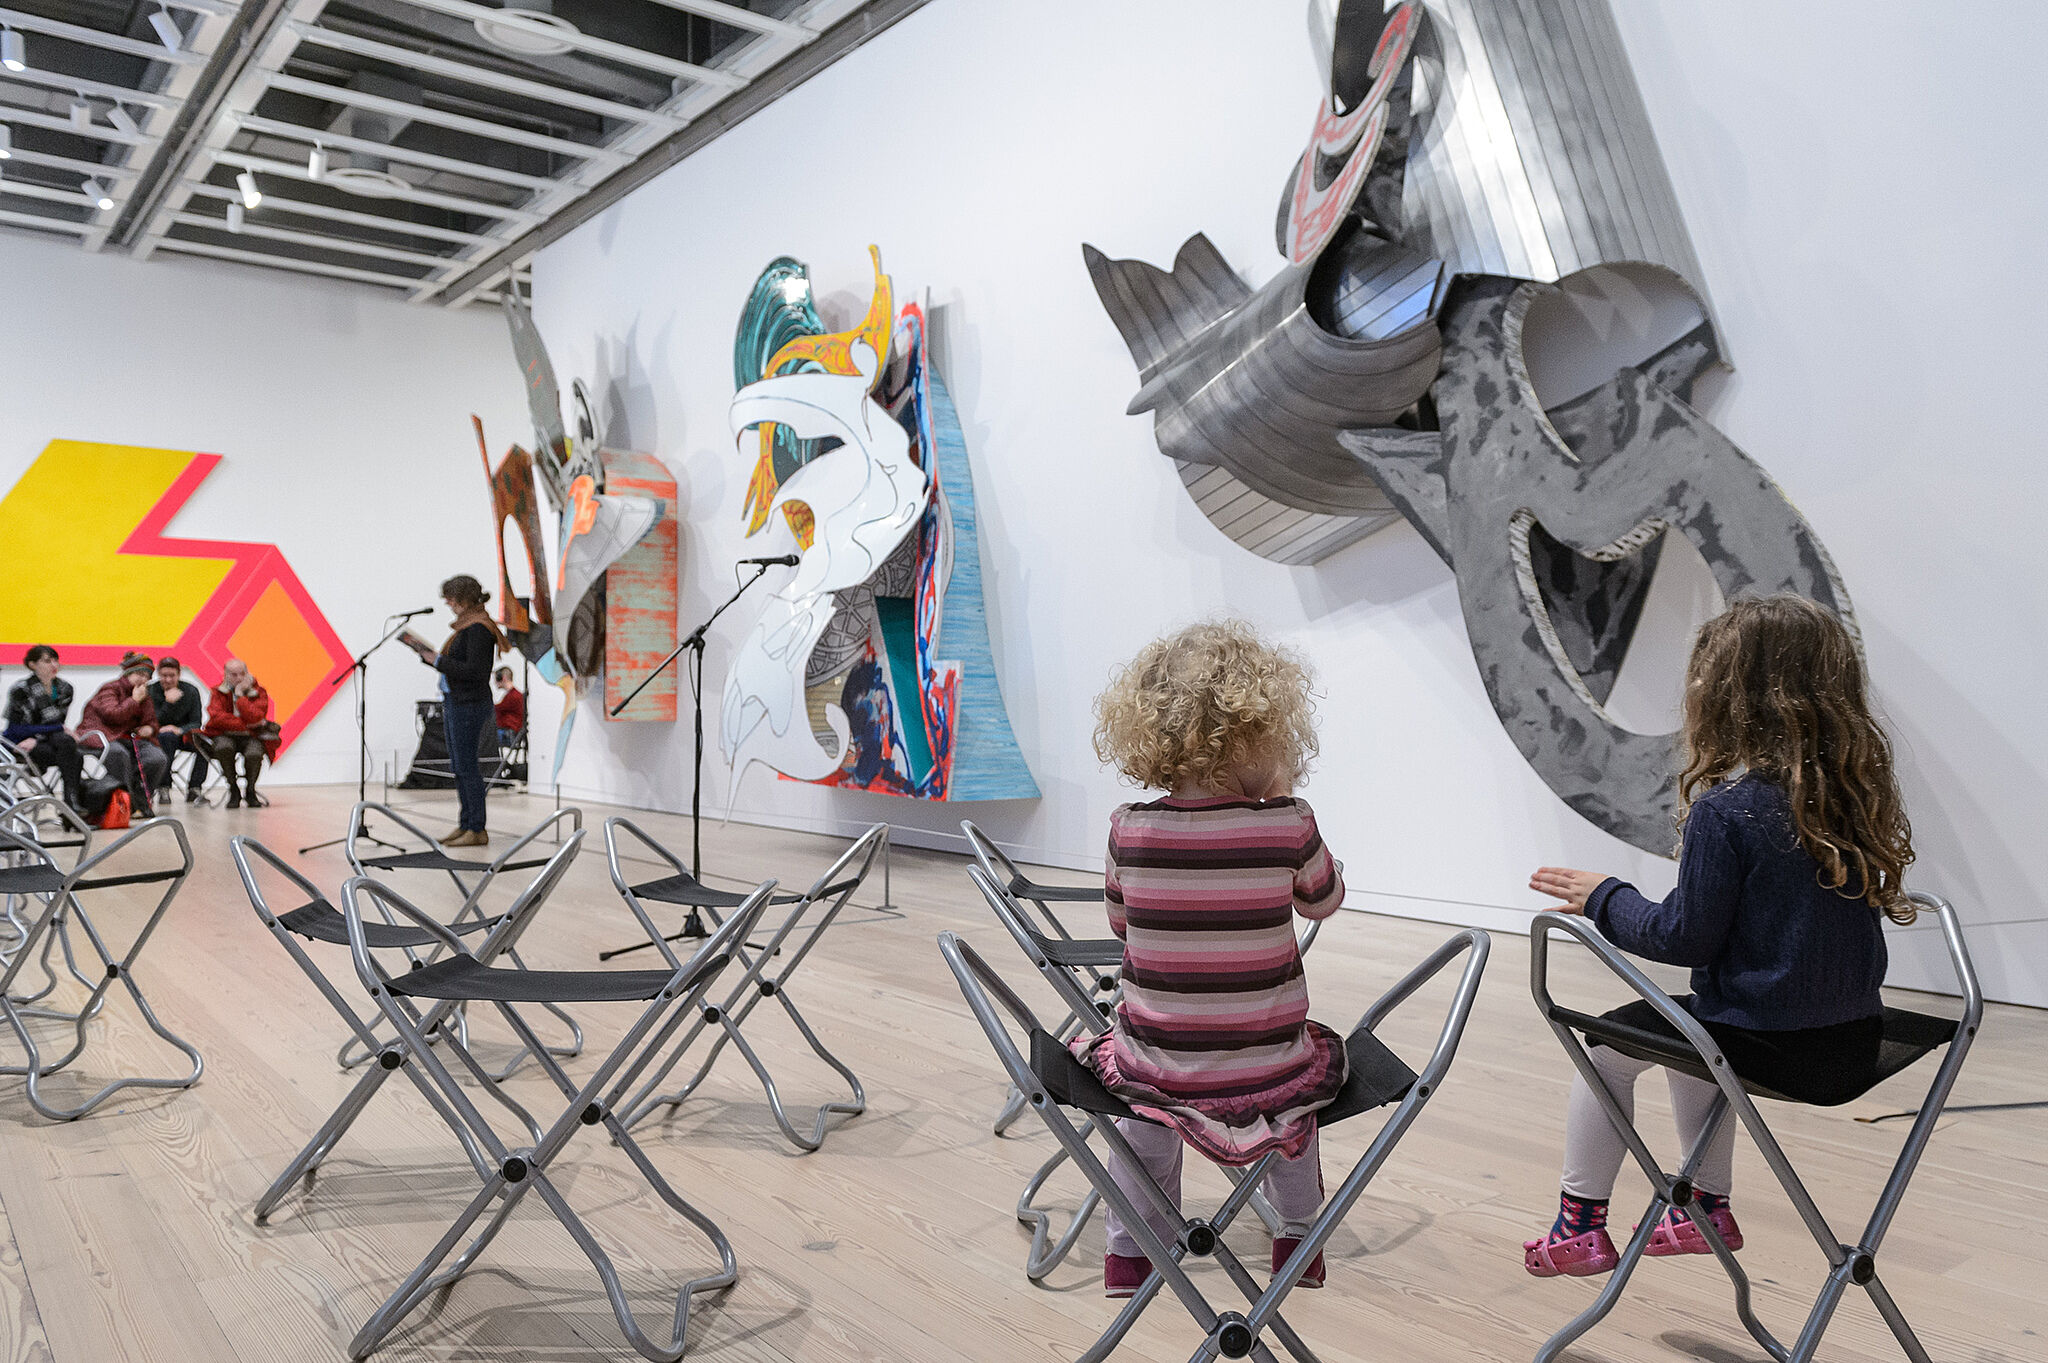 kids sitting in front of installations.